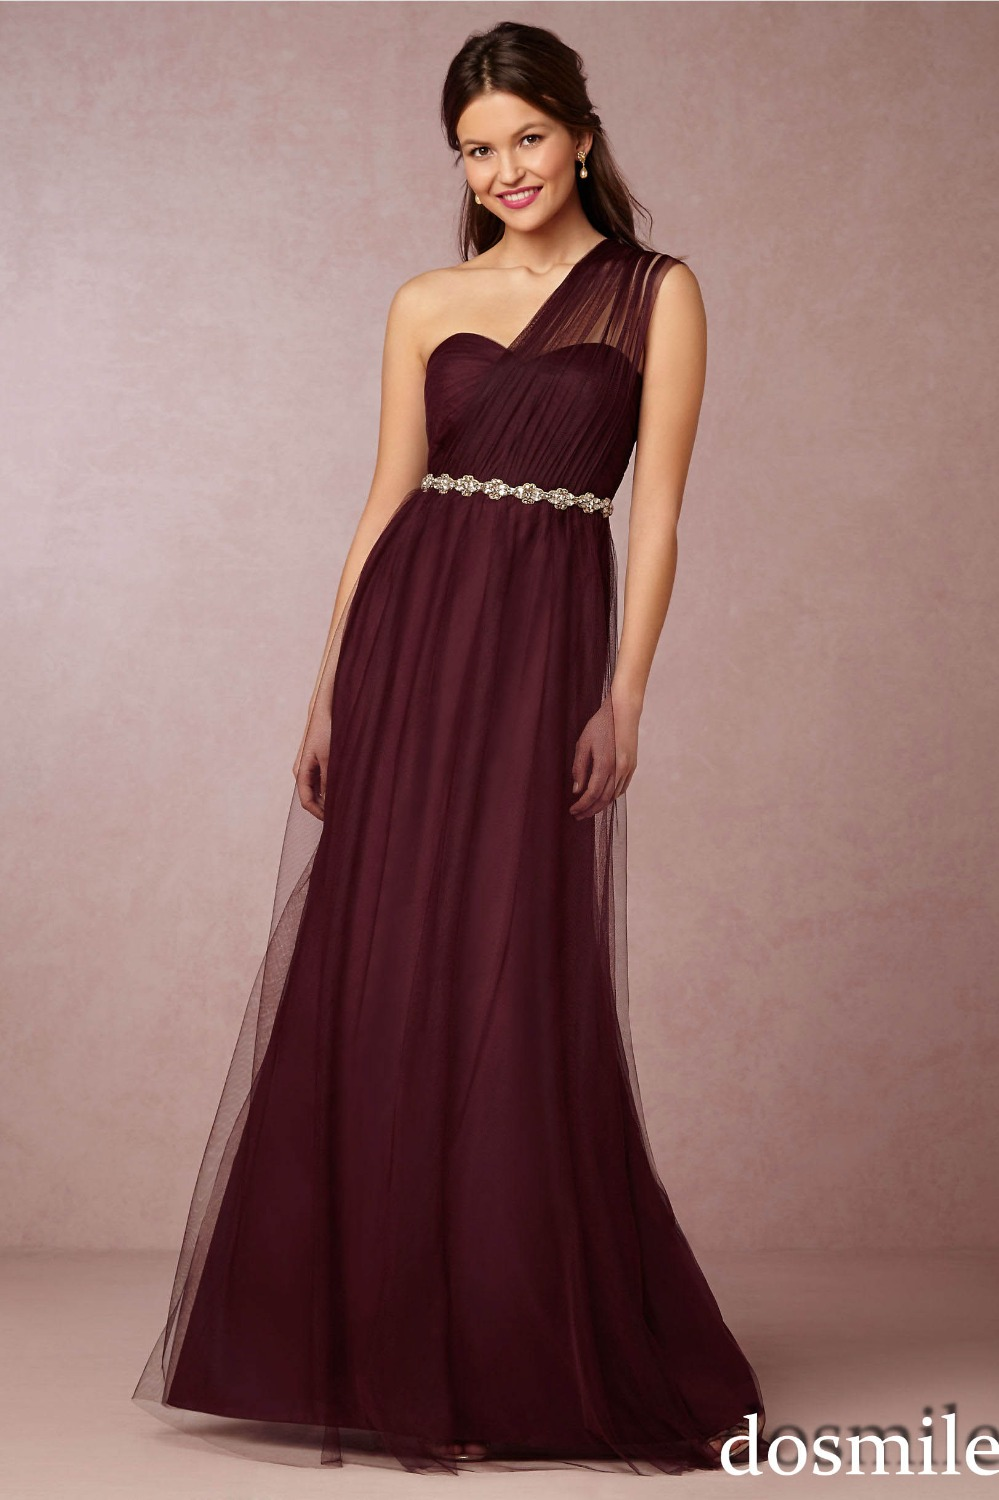 2016 Charming One Shoulder Sweetheart Burgundy Bridesmaid